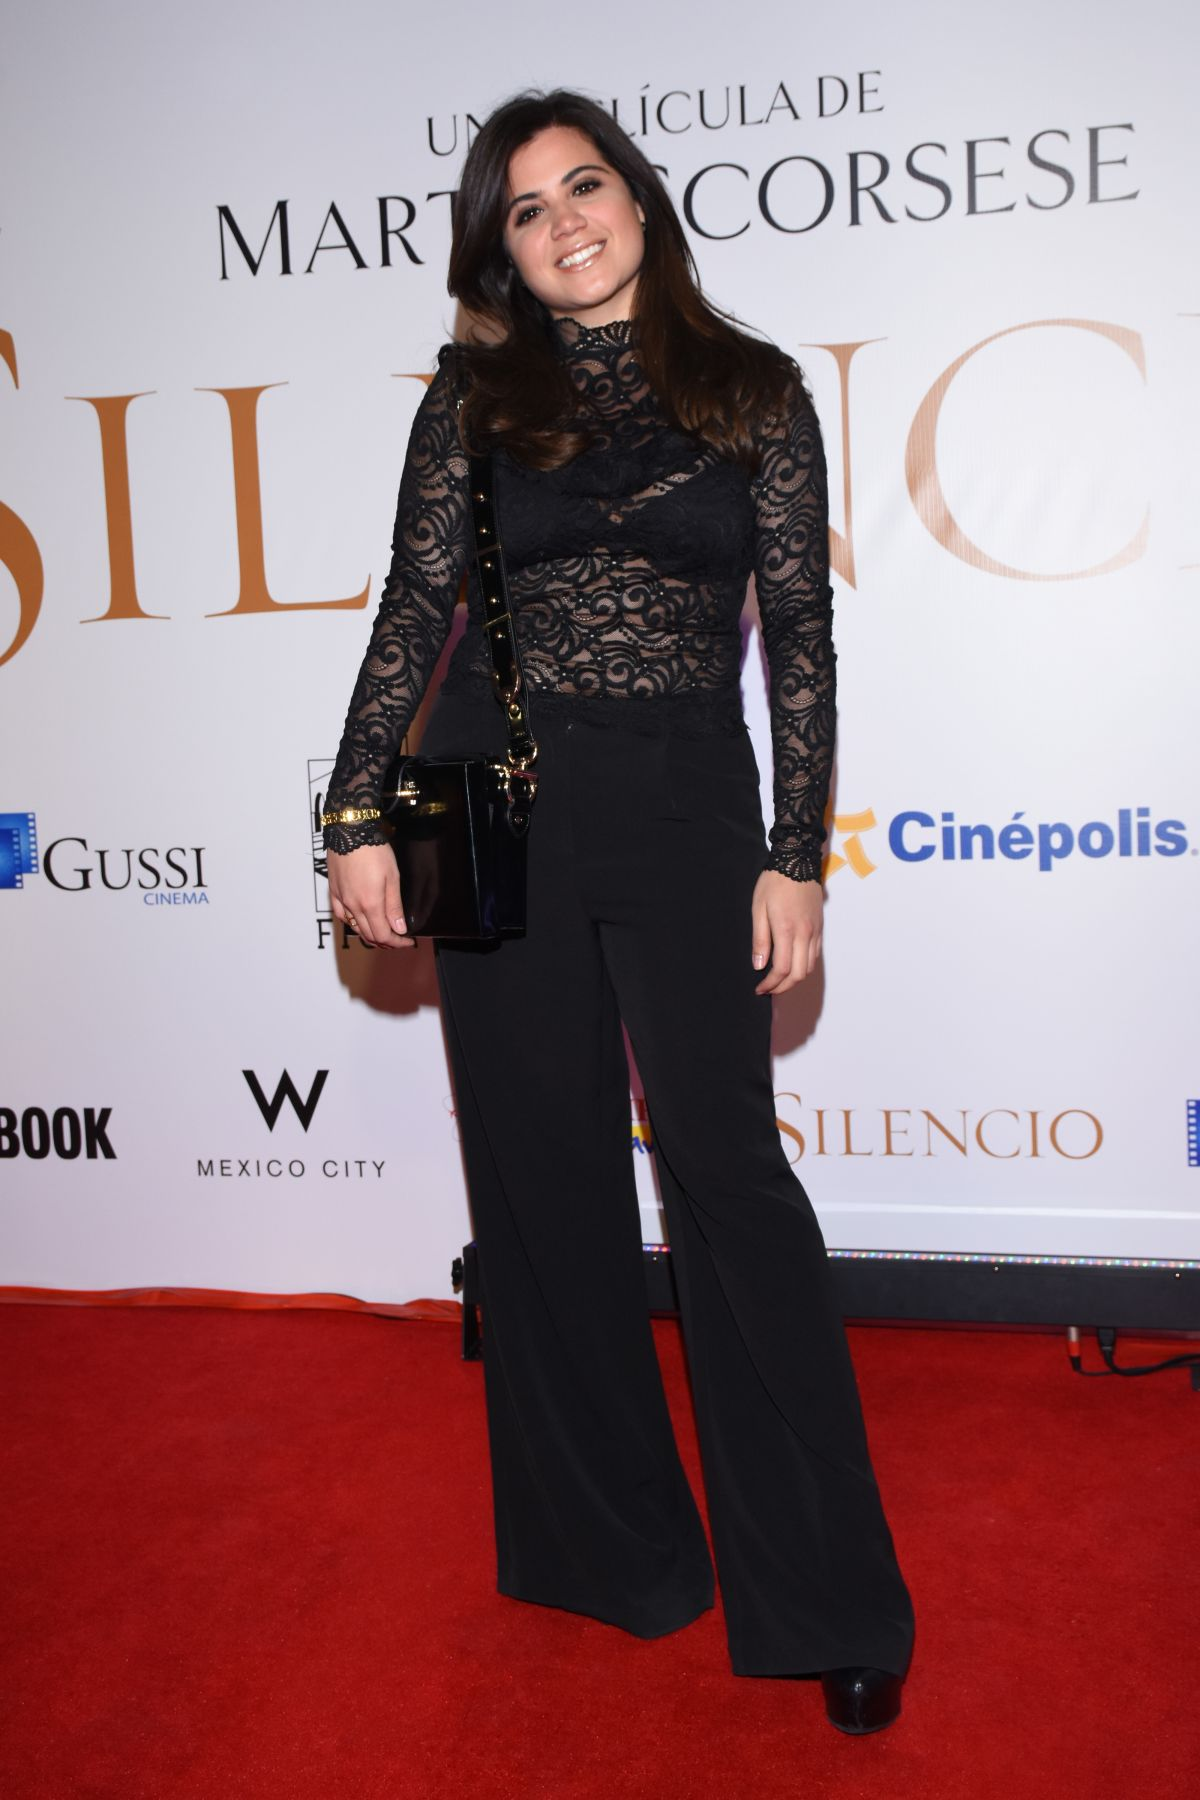 CINTHIA APARICIO at Silence Premiere in Mexico City 02/16/2017